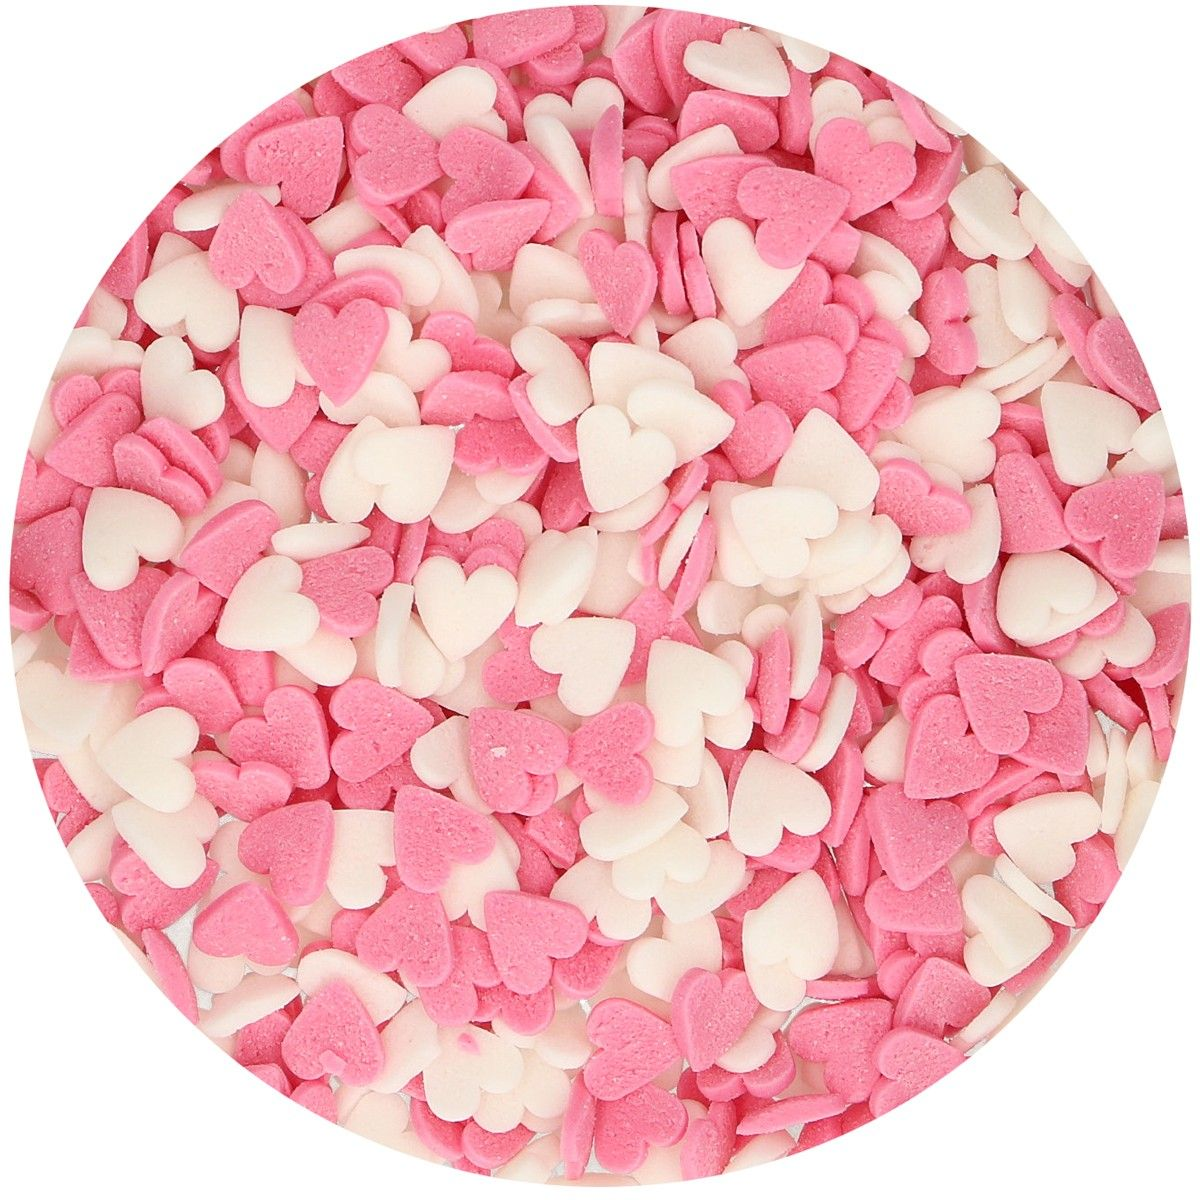 FunCakes Hearts Pink-White 60g